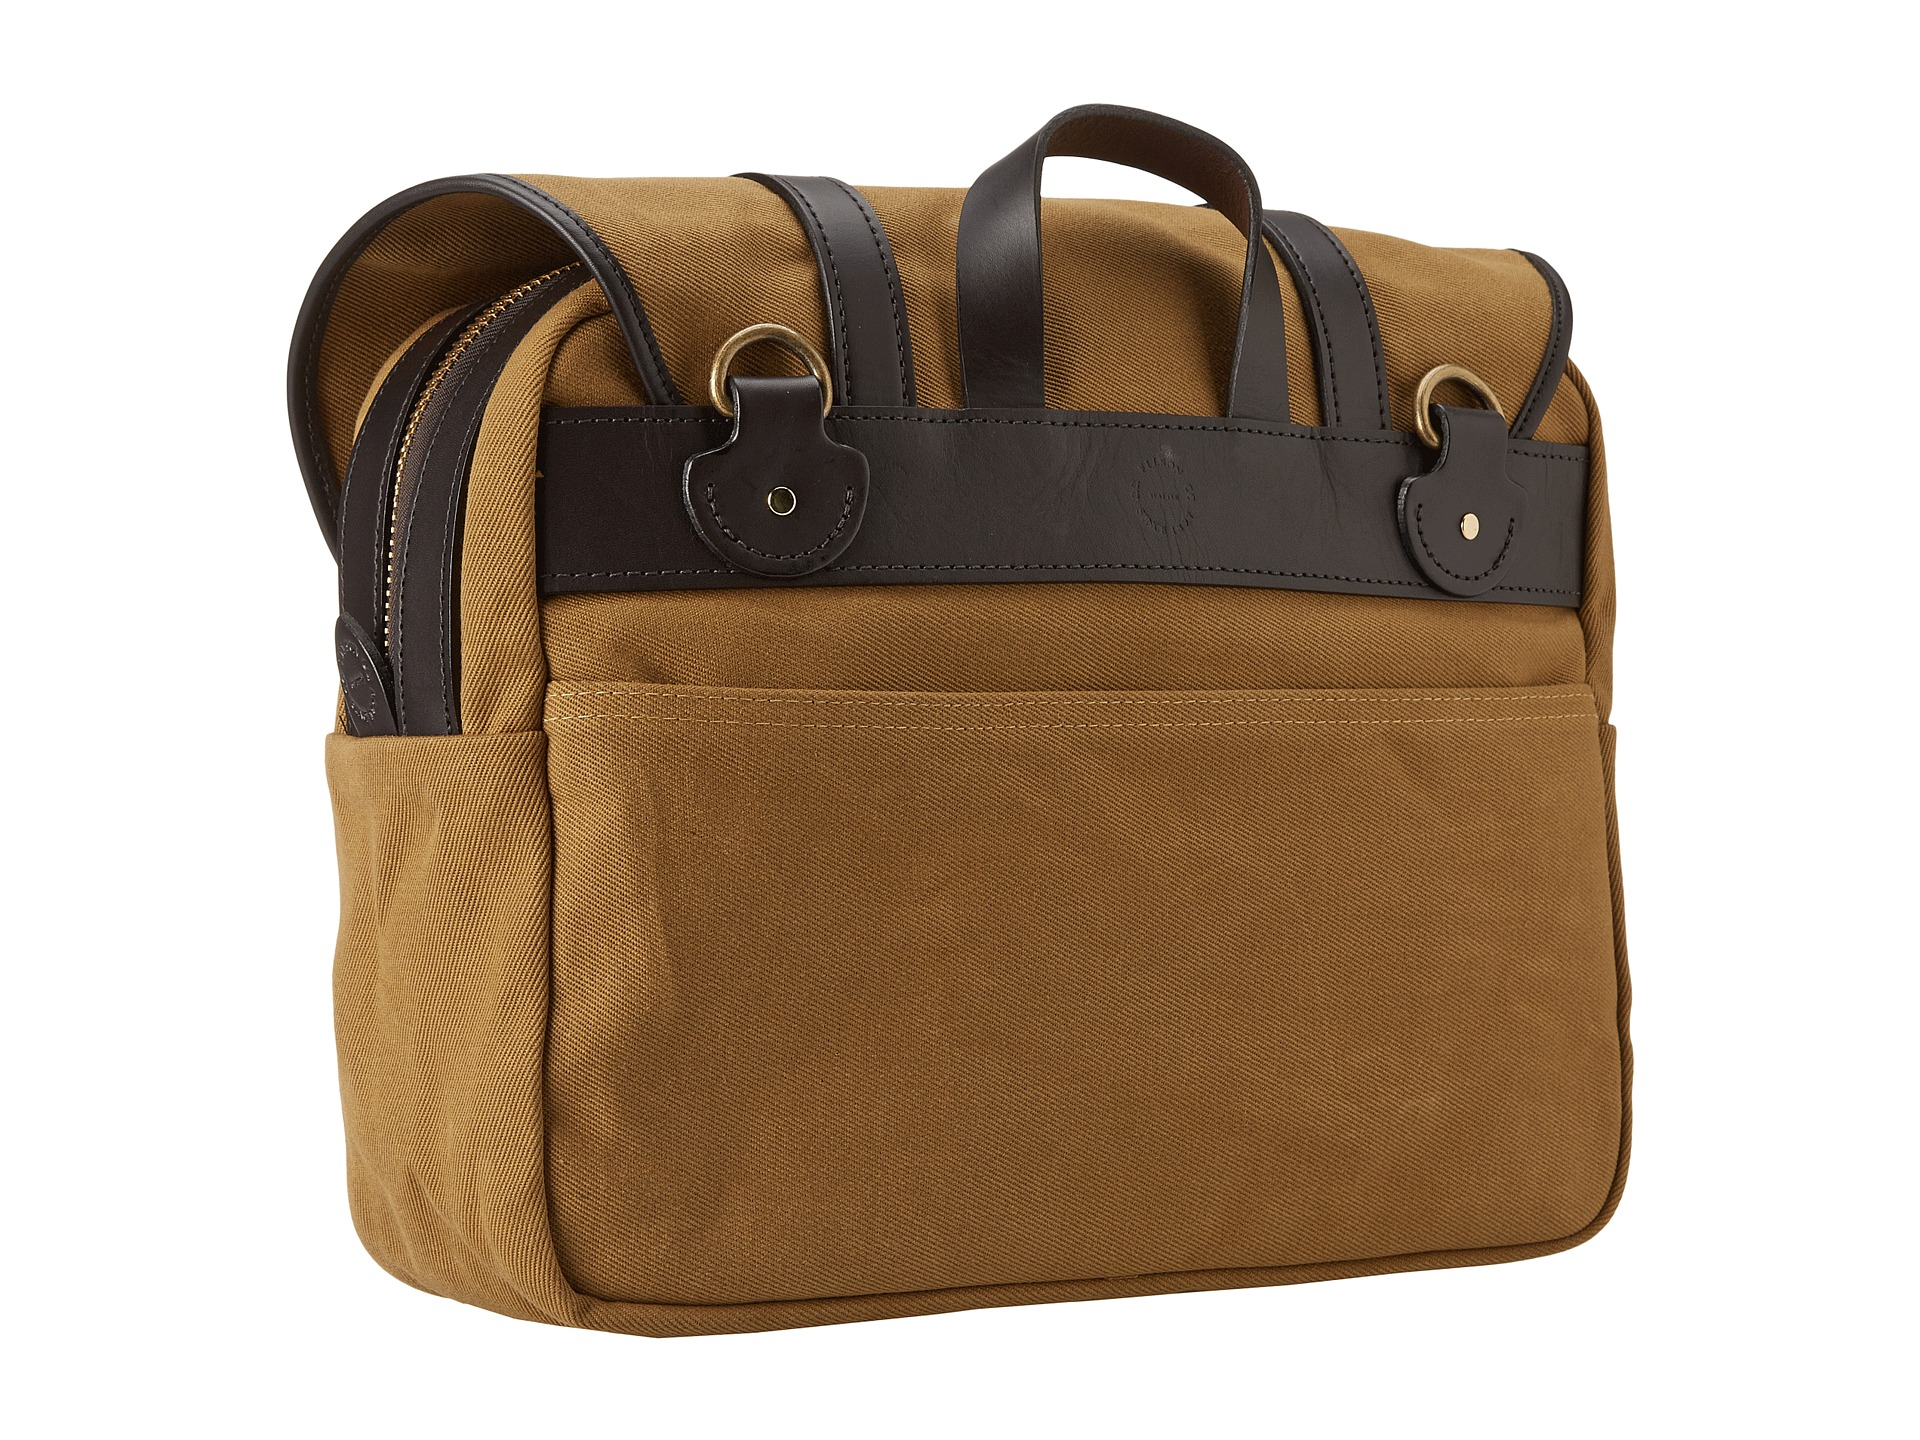 Carry Bags. Sports & Outdoors. Team Sports. Sports & Duffel Bags. Zodaca Women Marion Floral Small Duffel Gym Travel Bag Soulder Carry Bag. Product Image. Price $ Marketplace items (products not sold by gusajigadexe.cf), and items with freight charges are not eligible for ShippingPass.